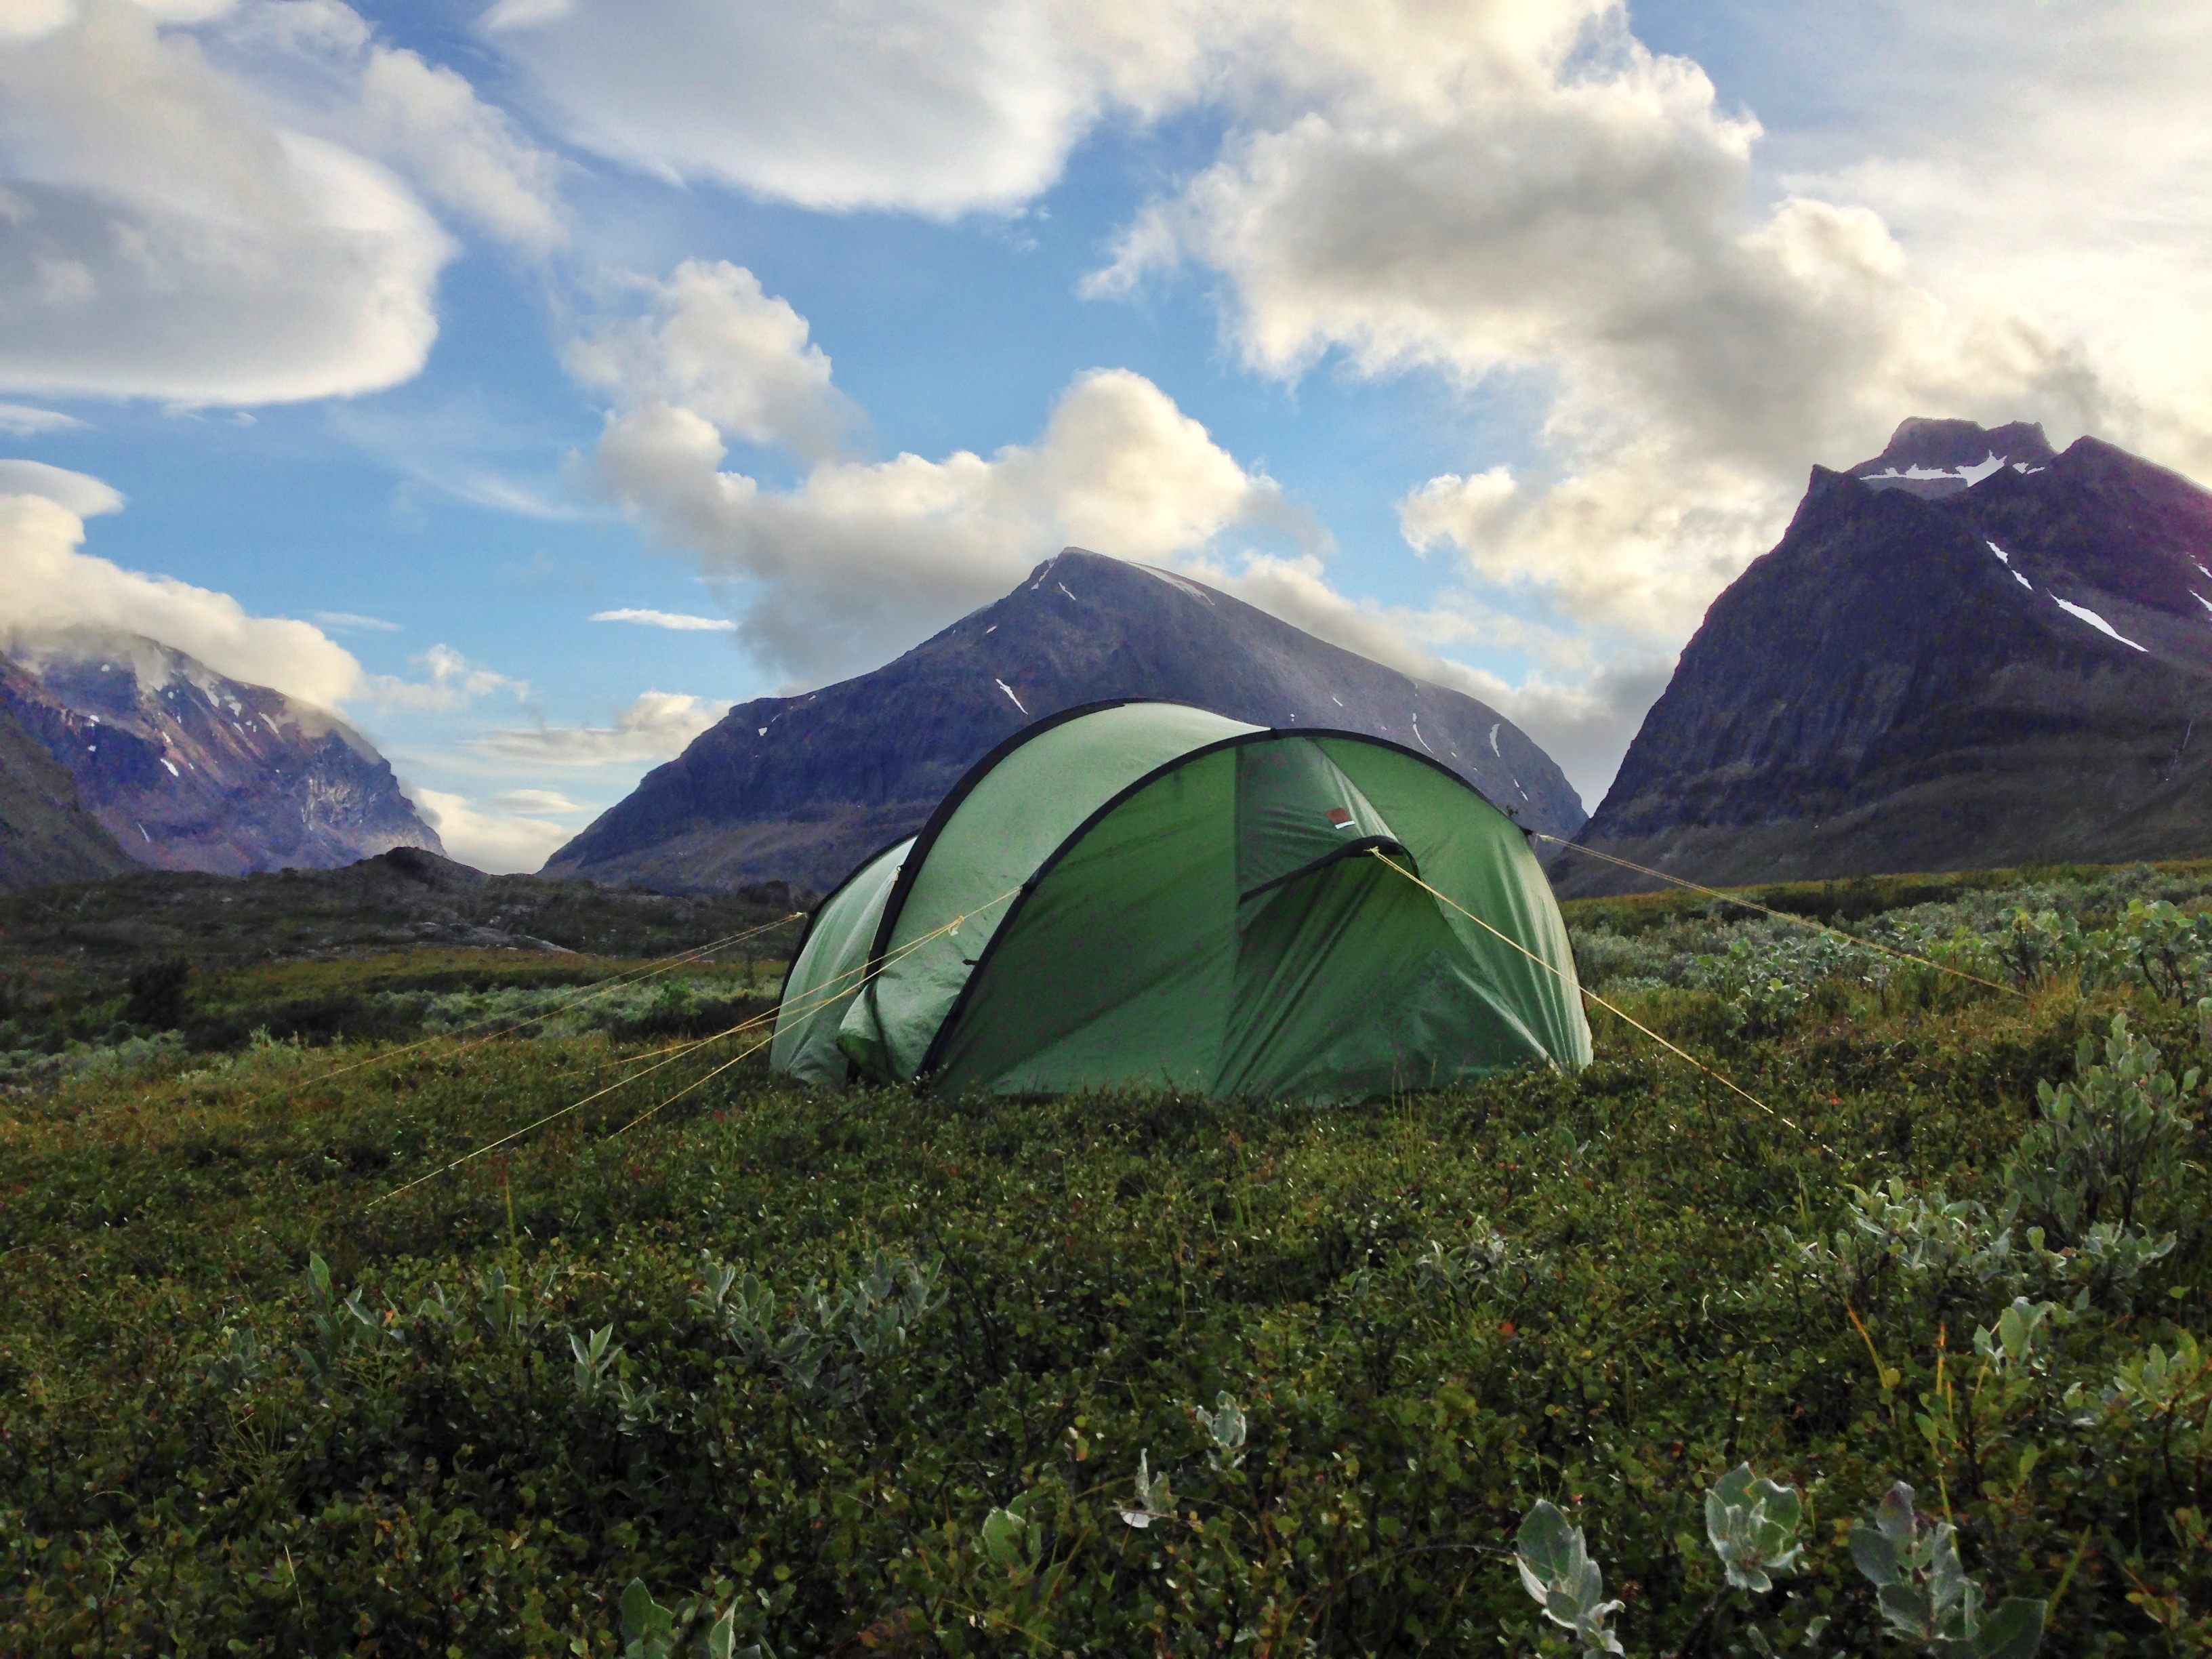 Camping by the foot of the mountain.